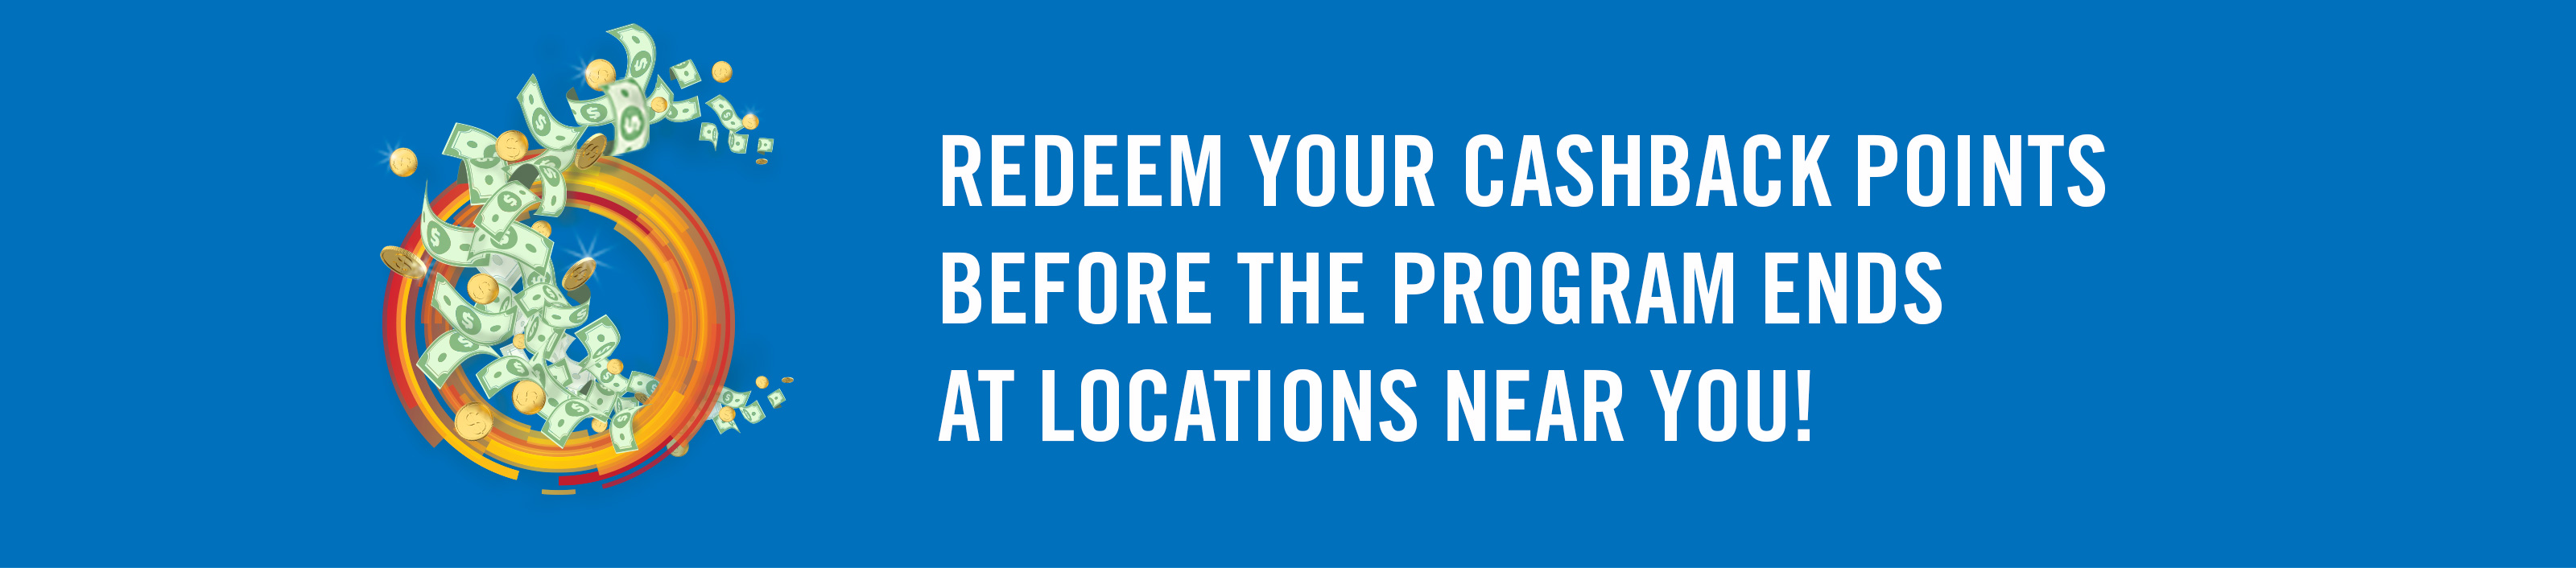 Redeem your Cashback Points before the program ends at locations near you!